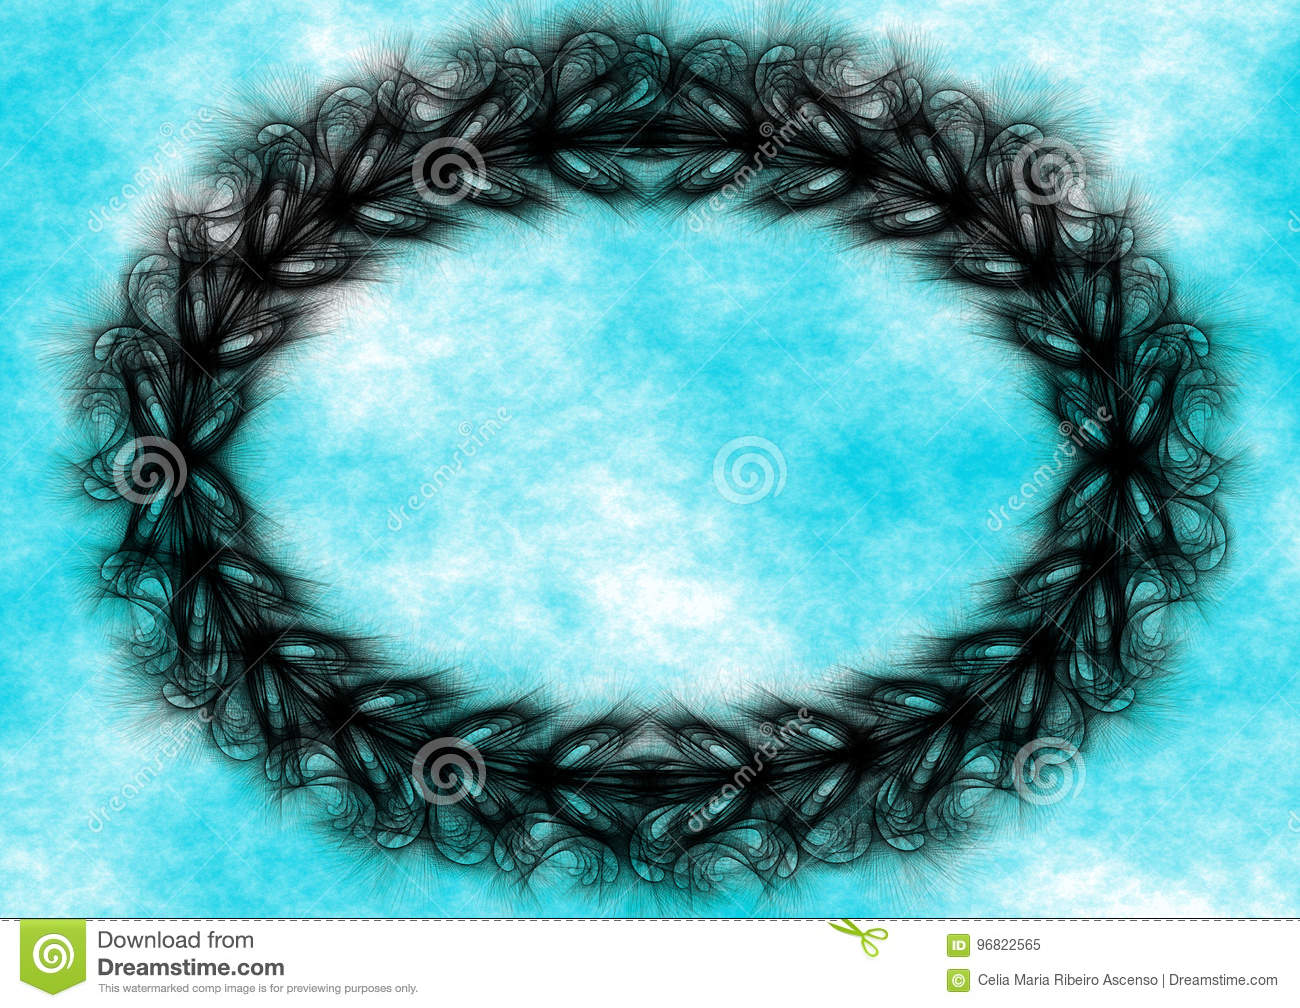 Black wreath border frame blue sky